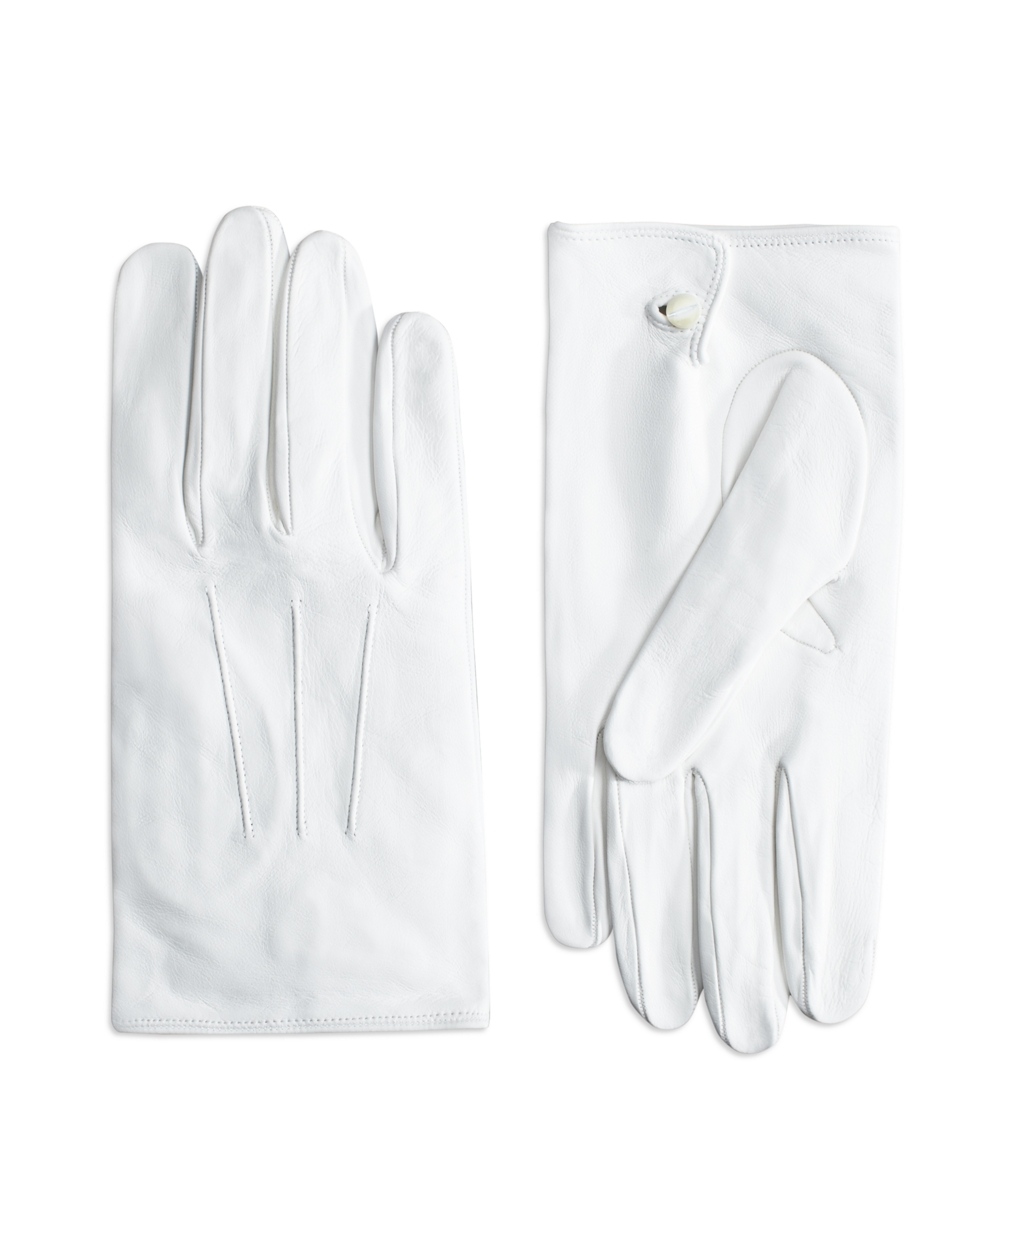 Victorian Men's Tuxedo, Tailcoats, Formalwear Guide Brooks Brothers Mens White Formal Gloves $148.00 AT vintagedancer.com